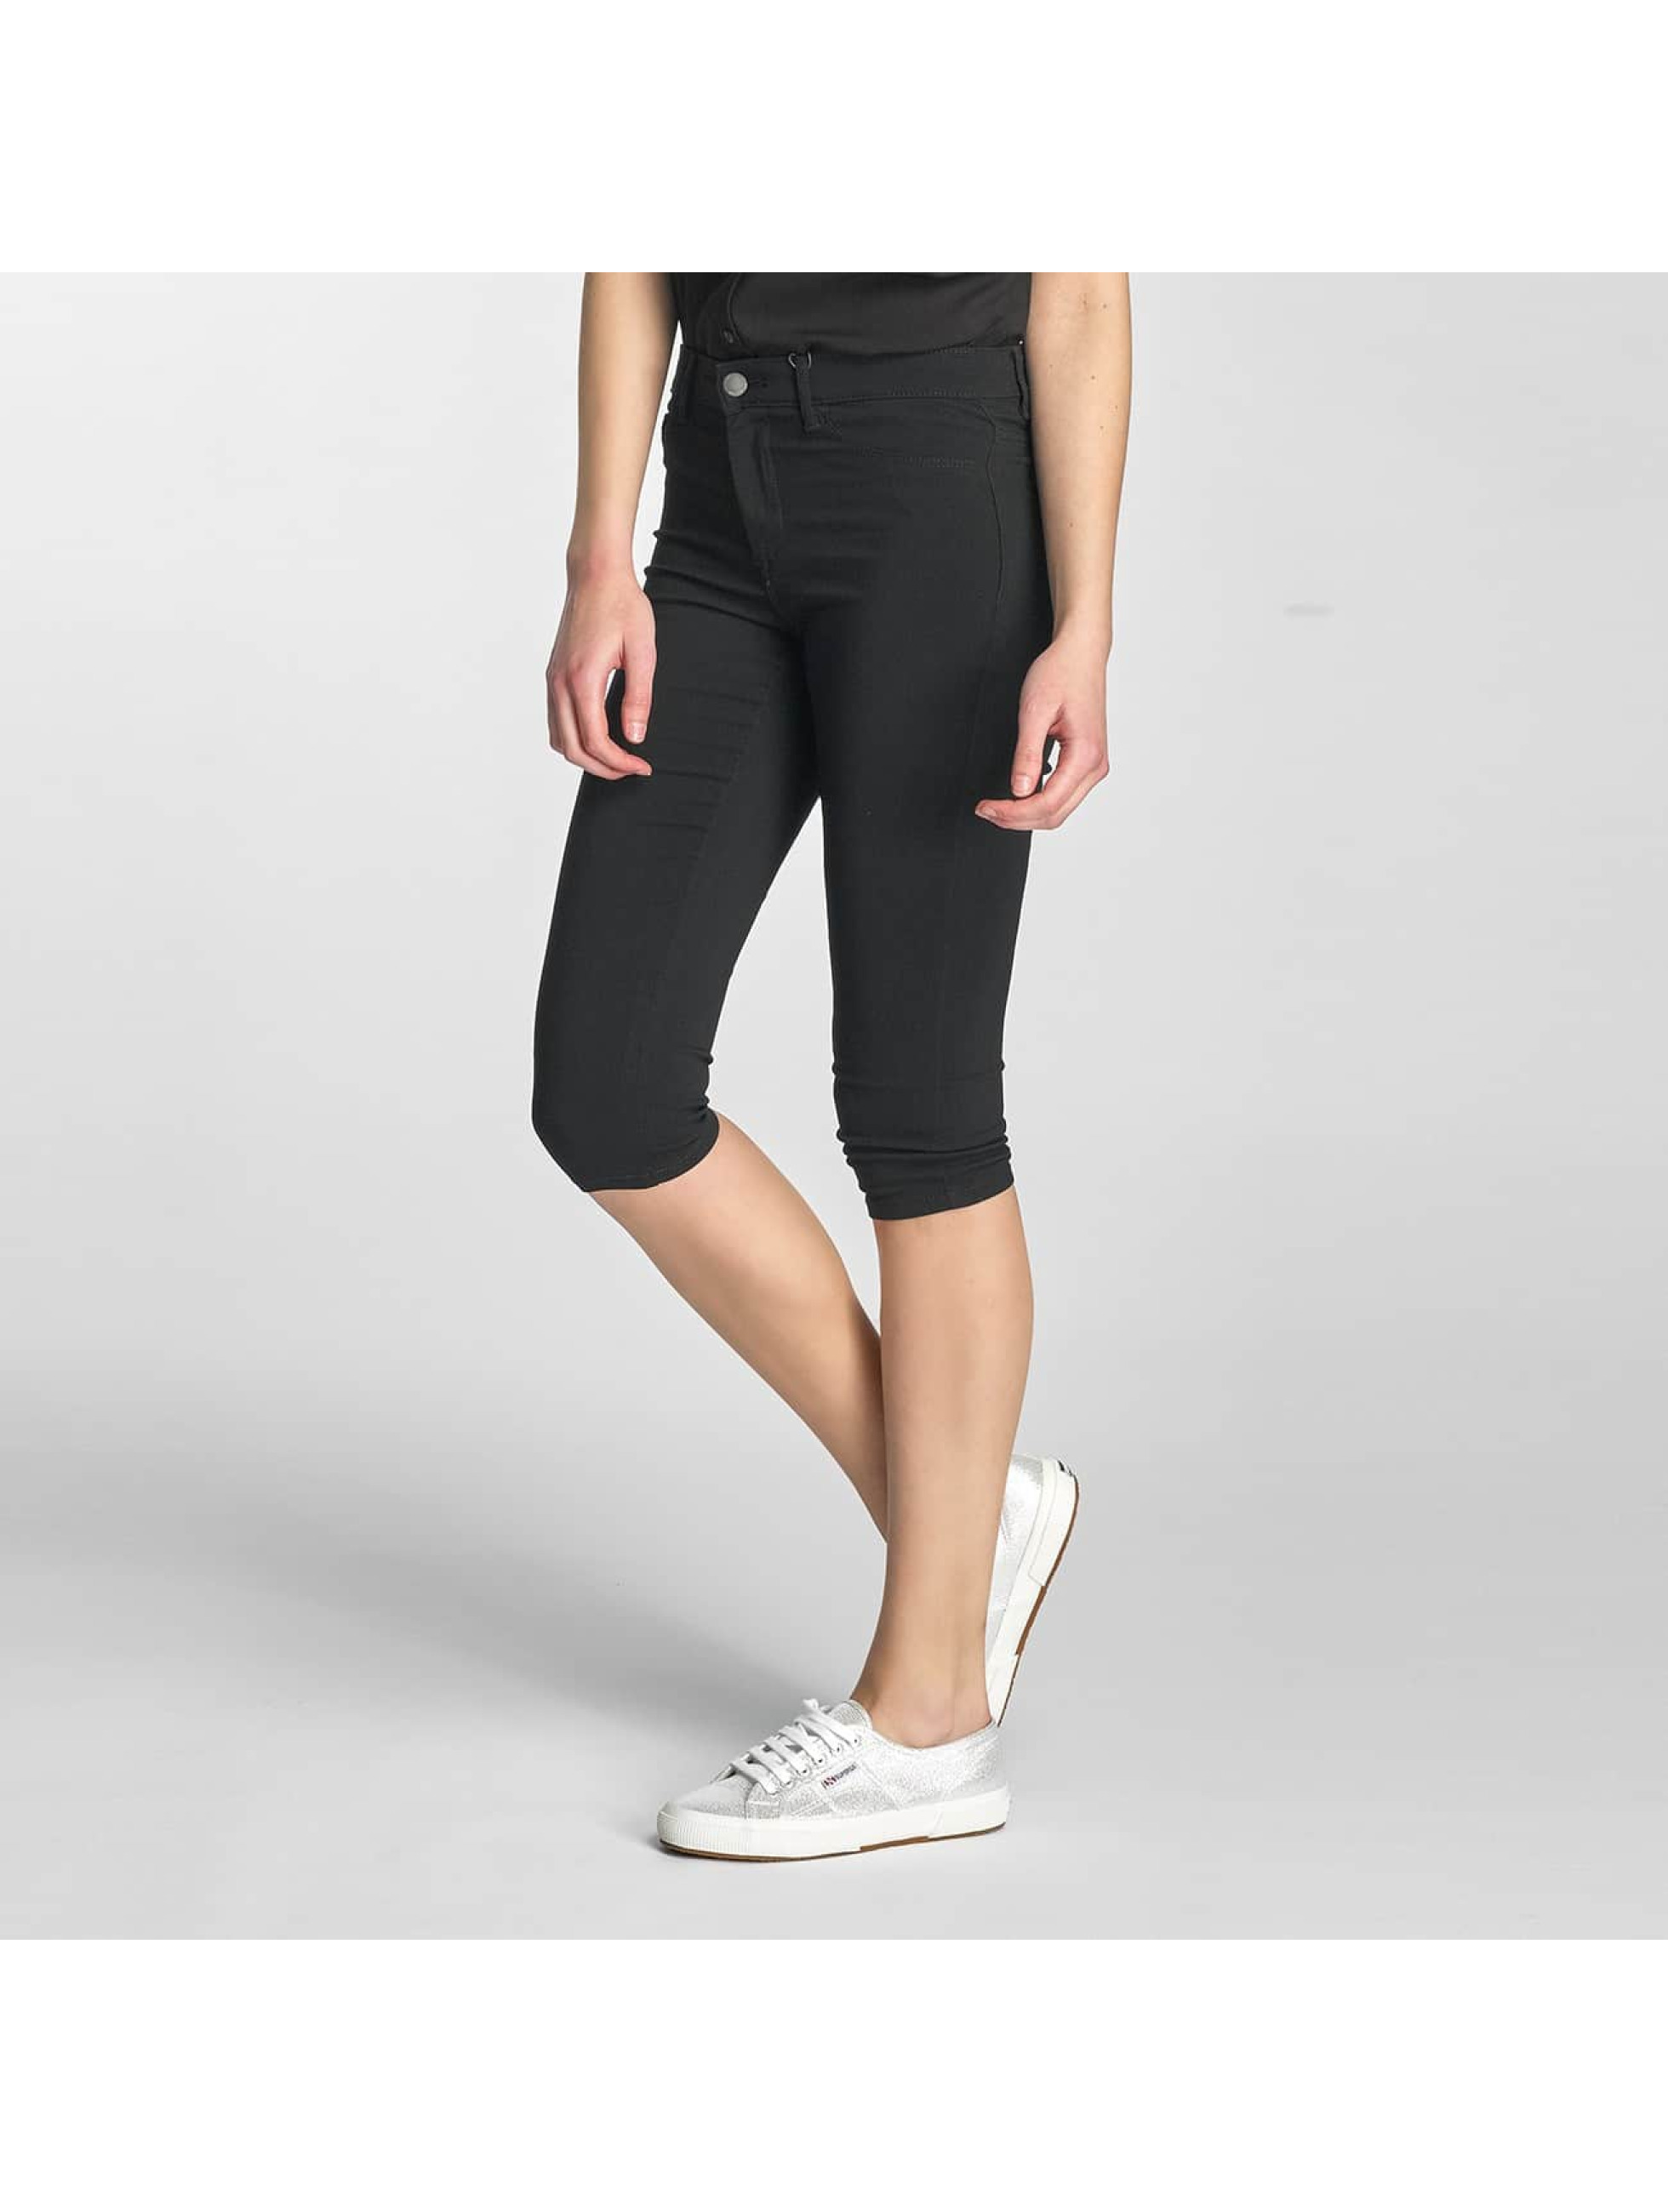 Pieces Frauen Legging PCSkin Wear in schwarz